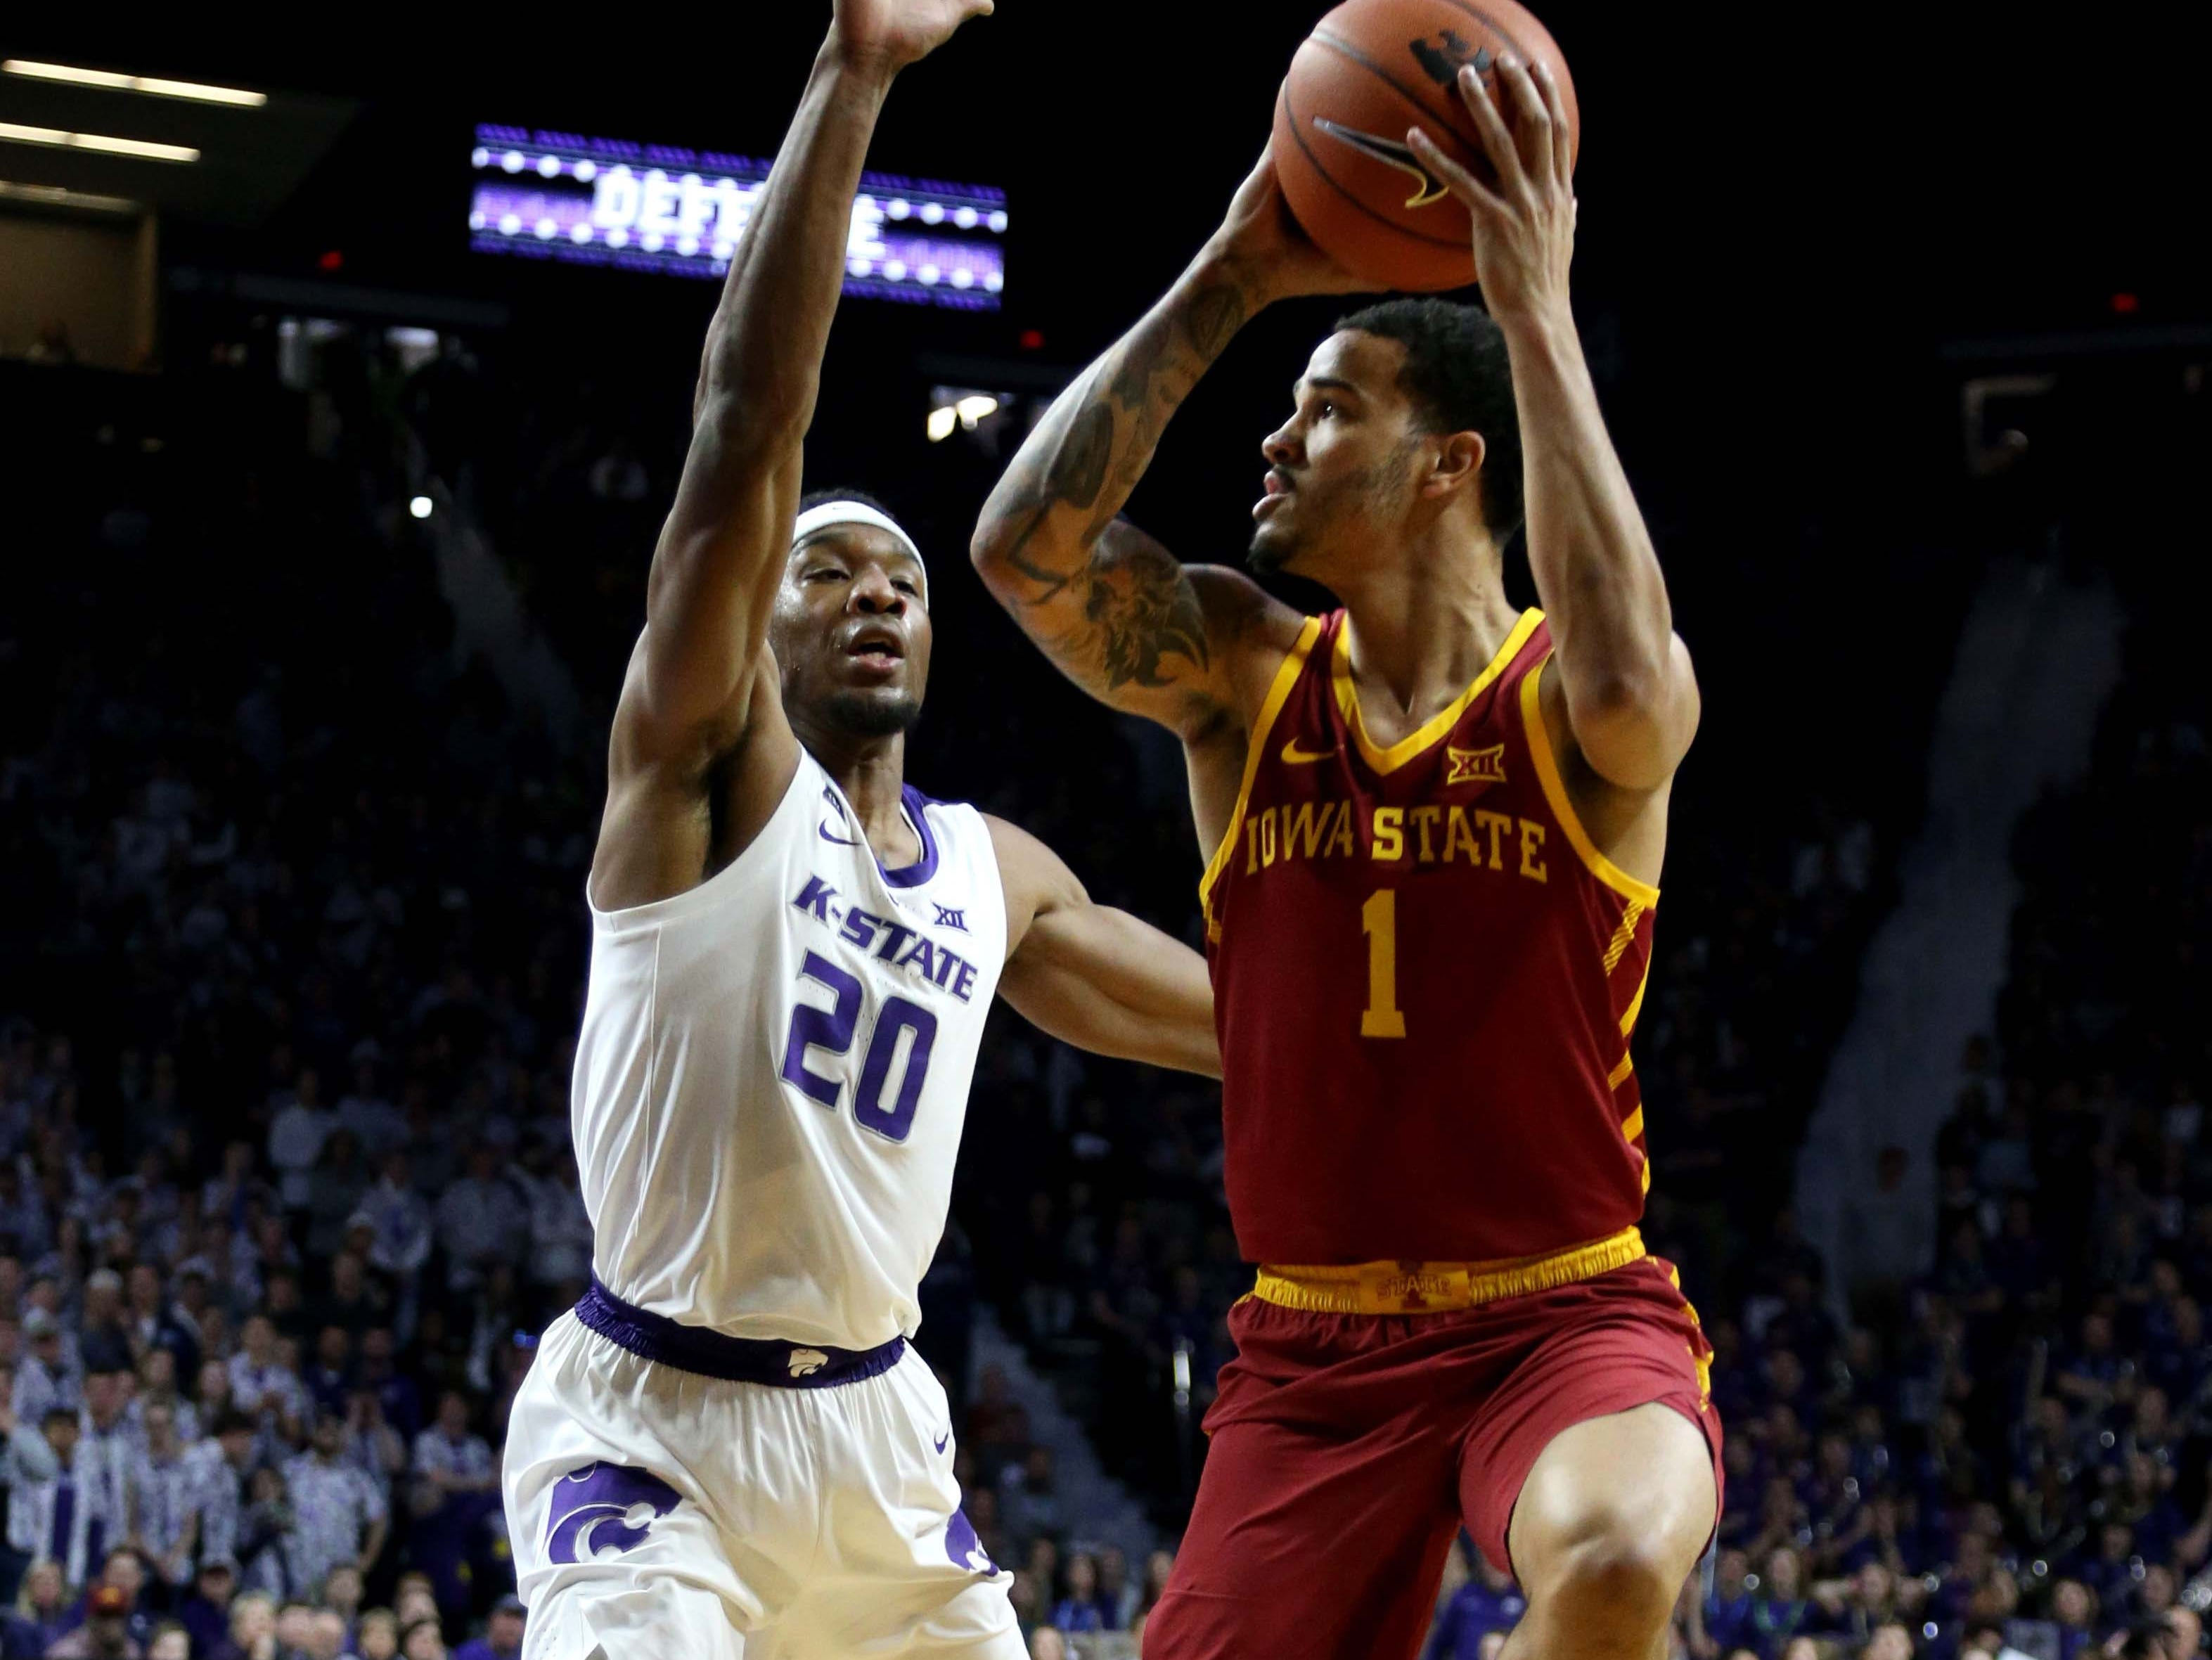 Feb 16, 2019; Manhattan, KS, USA; Iowa State Cyclones guard Nick Weiler-Babb (1) is guarded by Kansas State Wildcats forward Xavier Sneed (20) during the first half at Bramlage Coliseum.